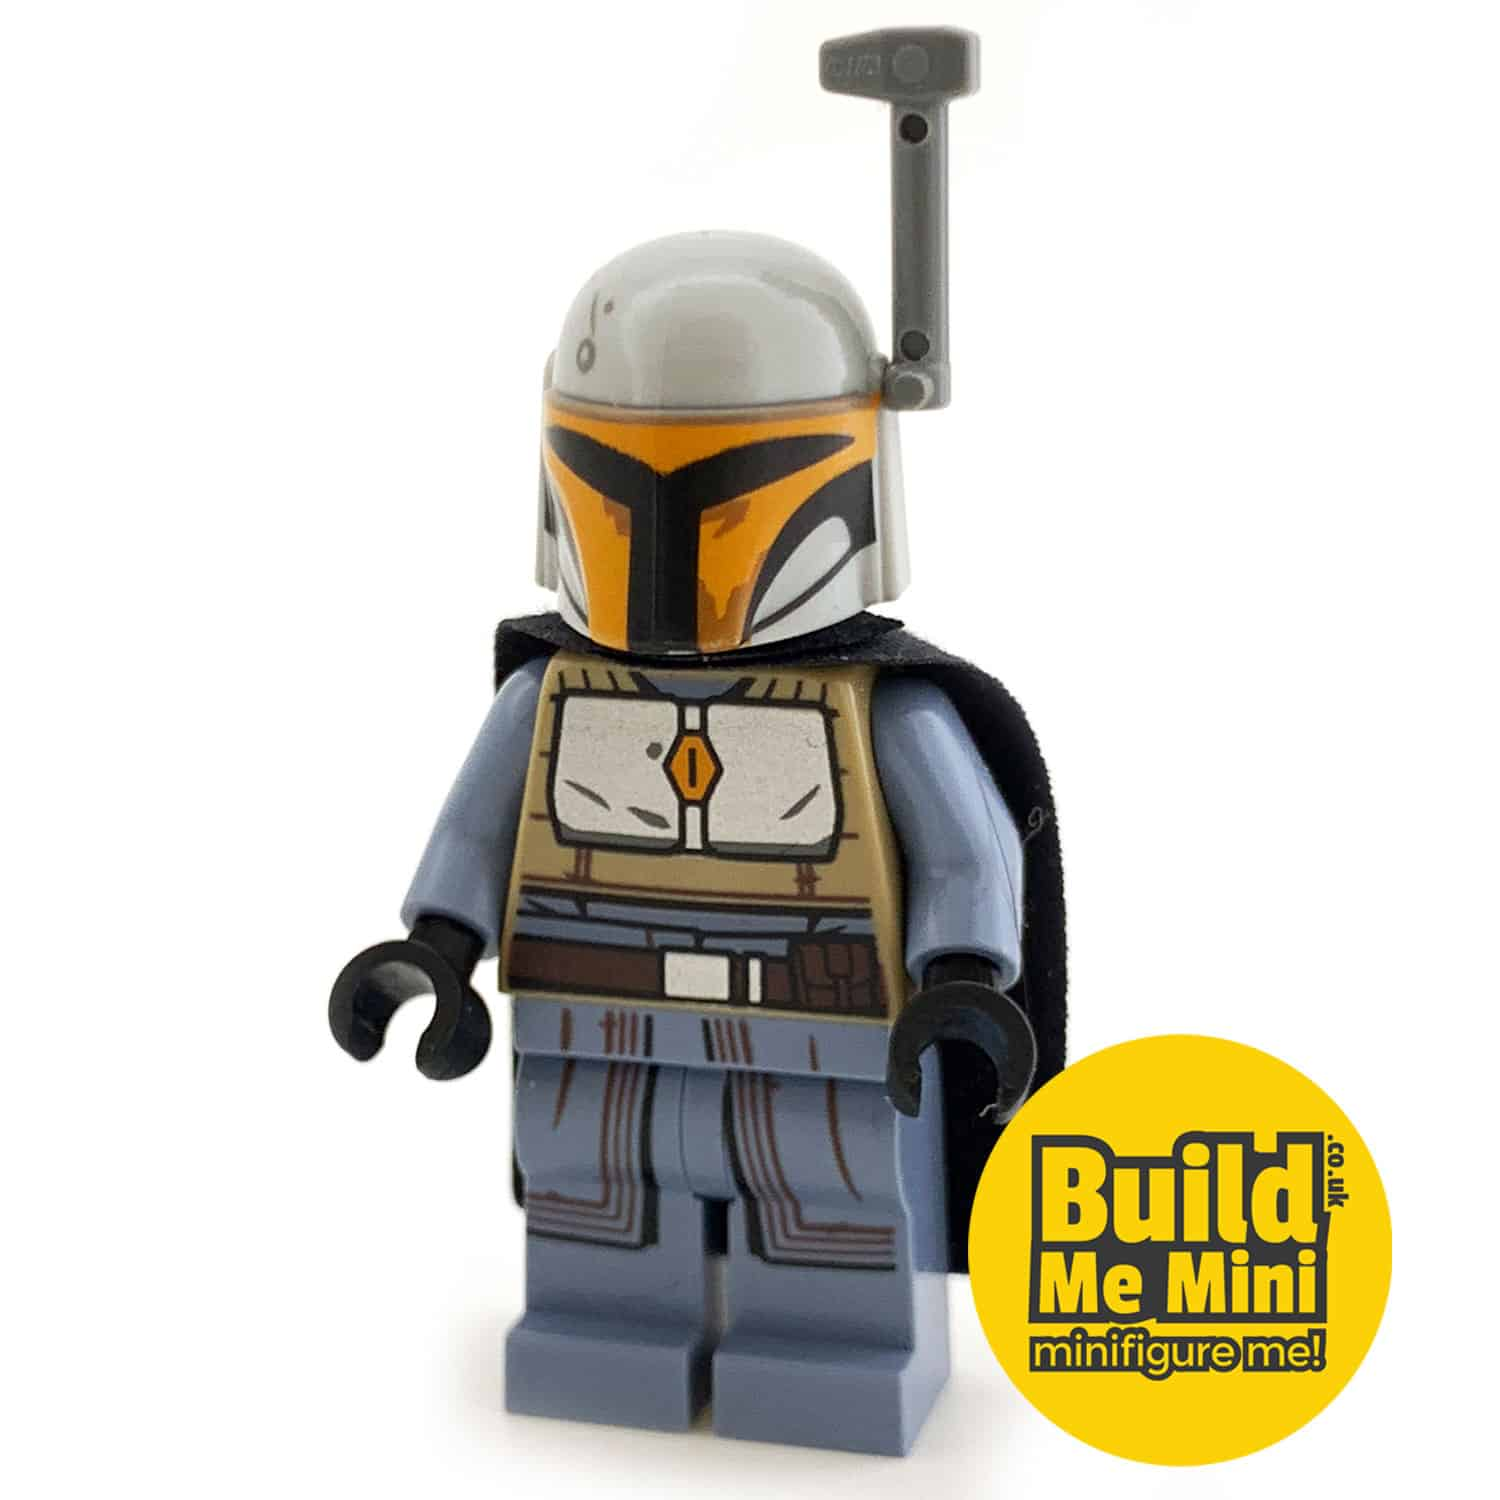 LEGO Star Wars – Mandalorian Armour – Silver, Grey, Orange